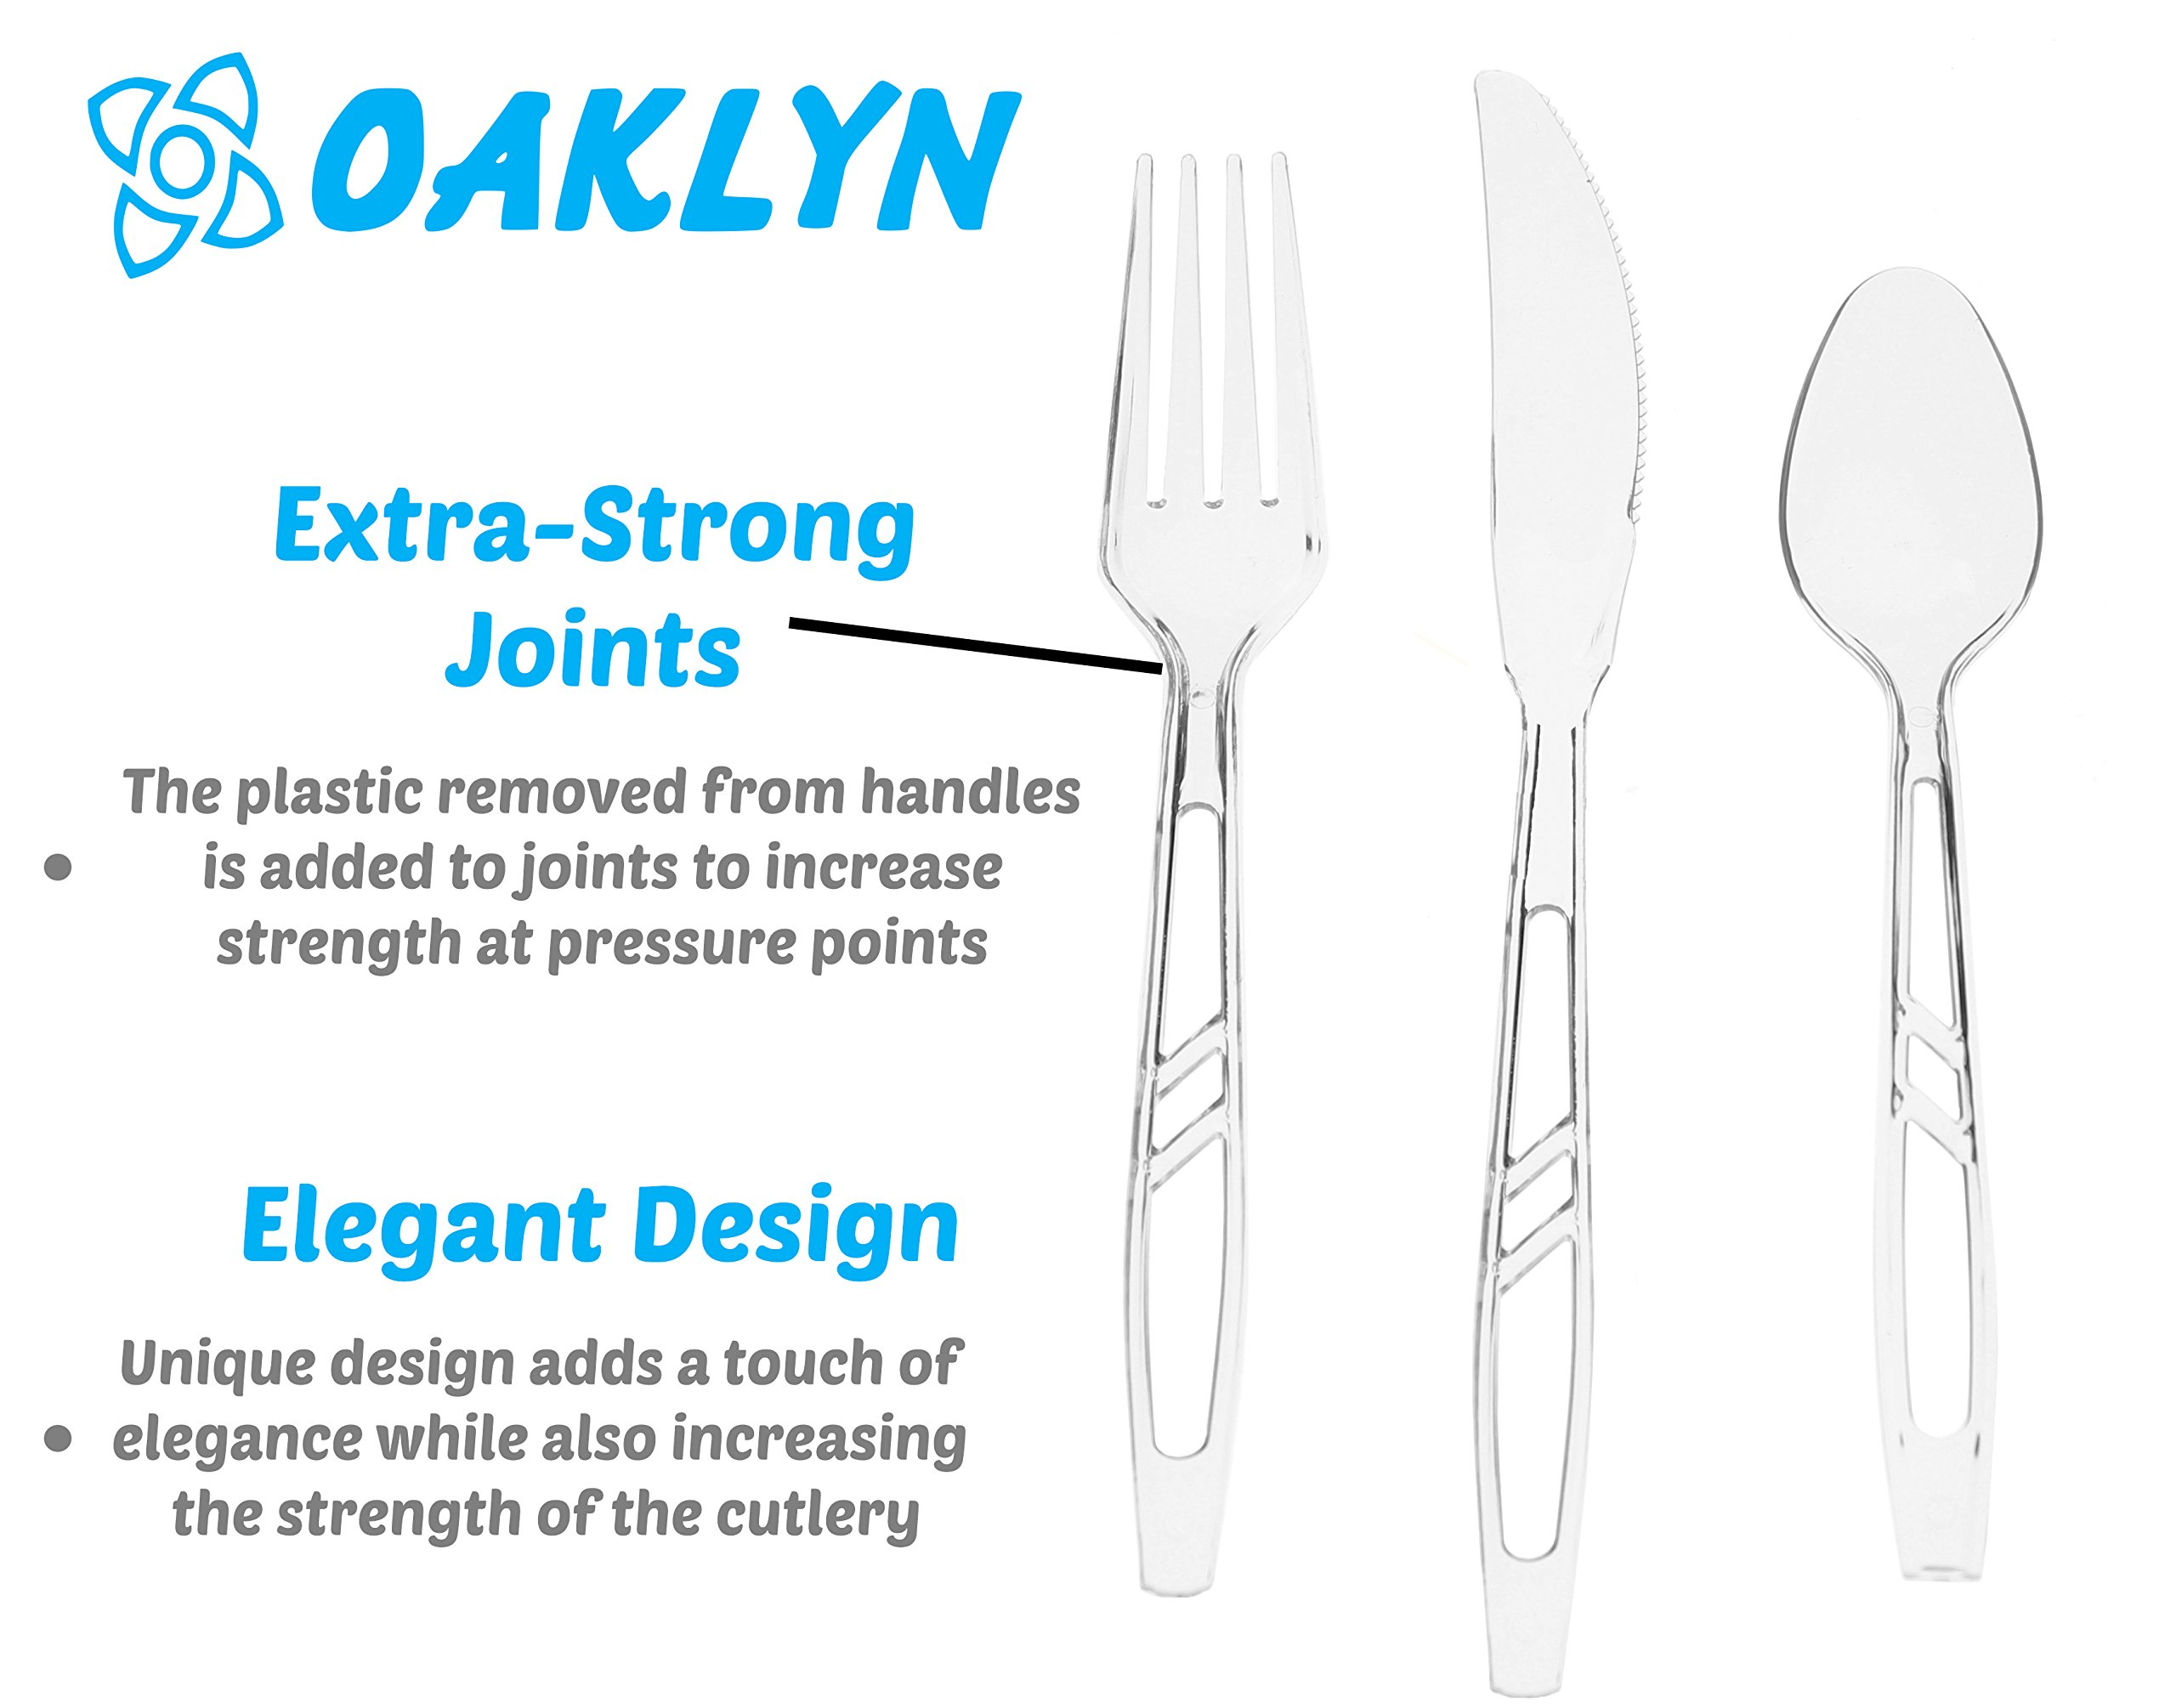 (300 Count) Heavy Duty Clear Plastic Cutlery Set - 100 Forks 100 Spoons 100 Knives - Bulk Disposable or Reusable Heavyweight Fancy Utensils by Oaklyn (Image #2)